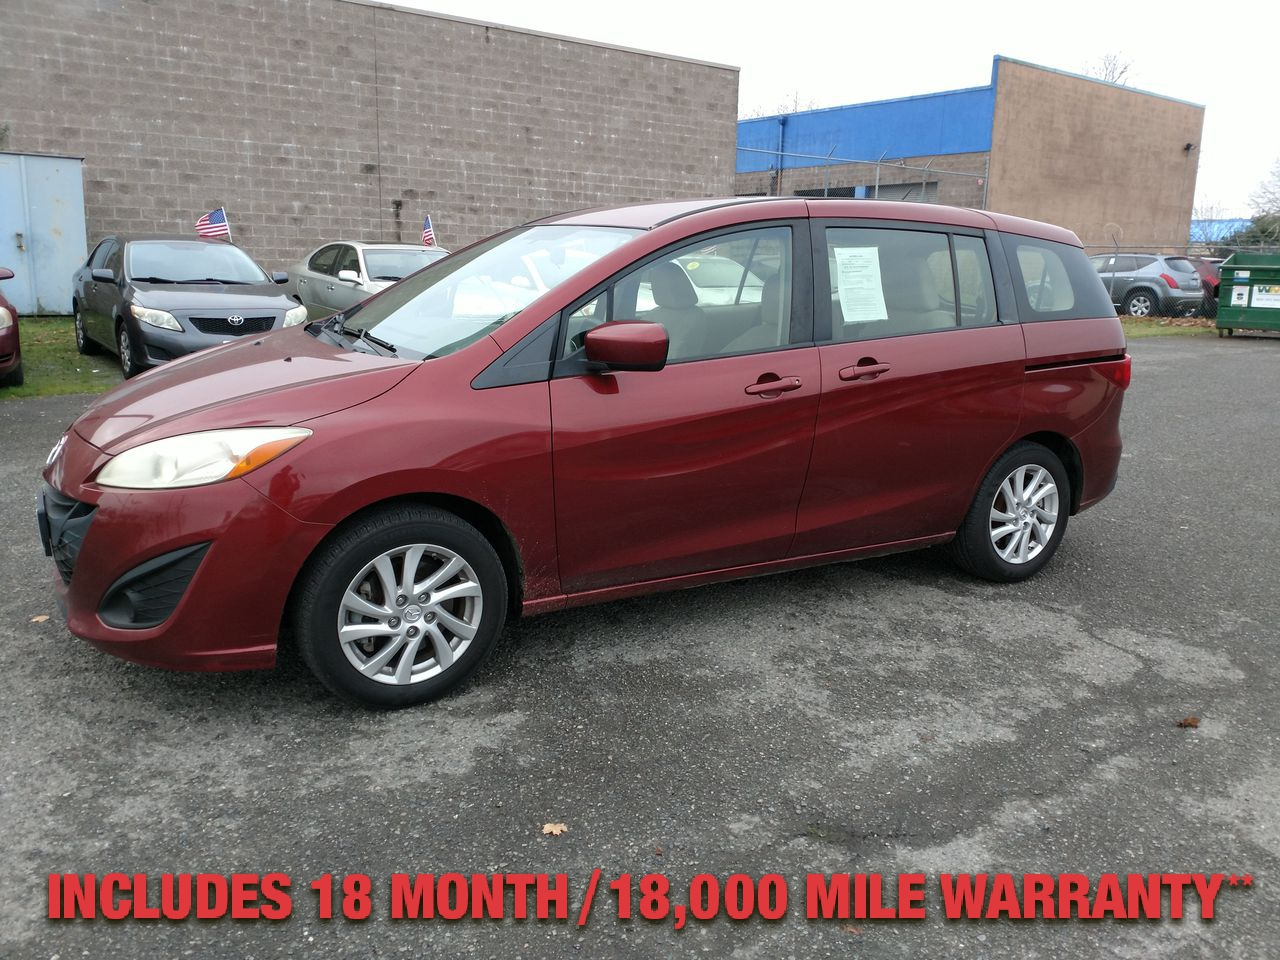 Pre-Owned 2012 MAZDA Mazda5 SPORT MINI